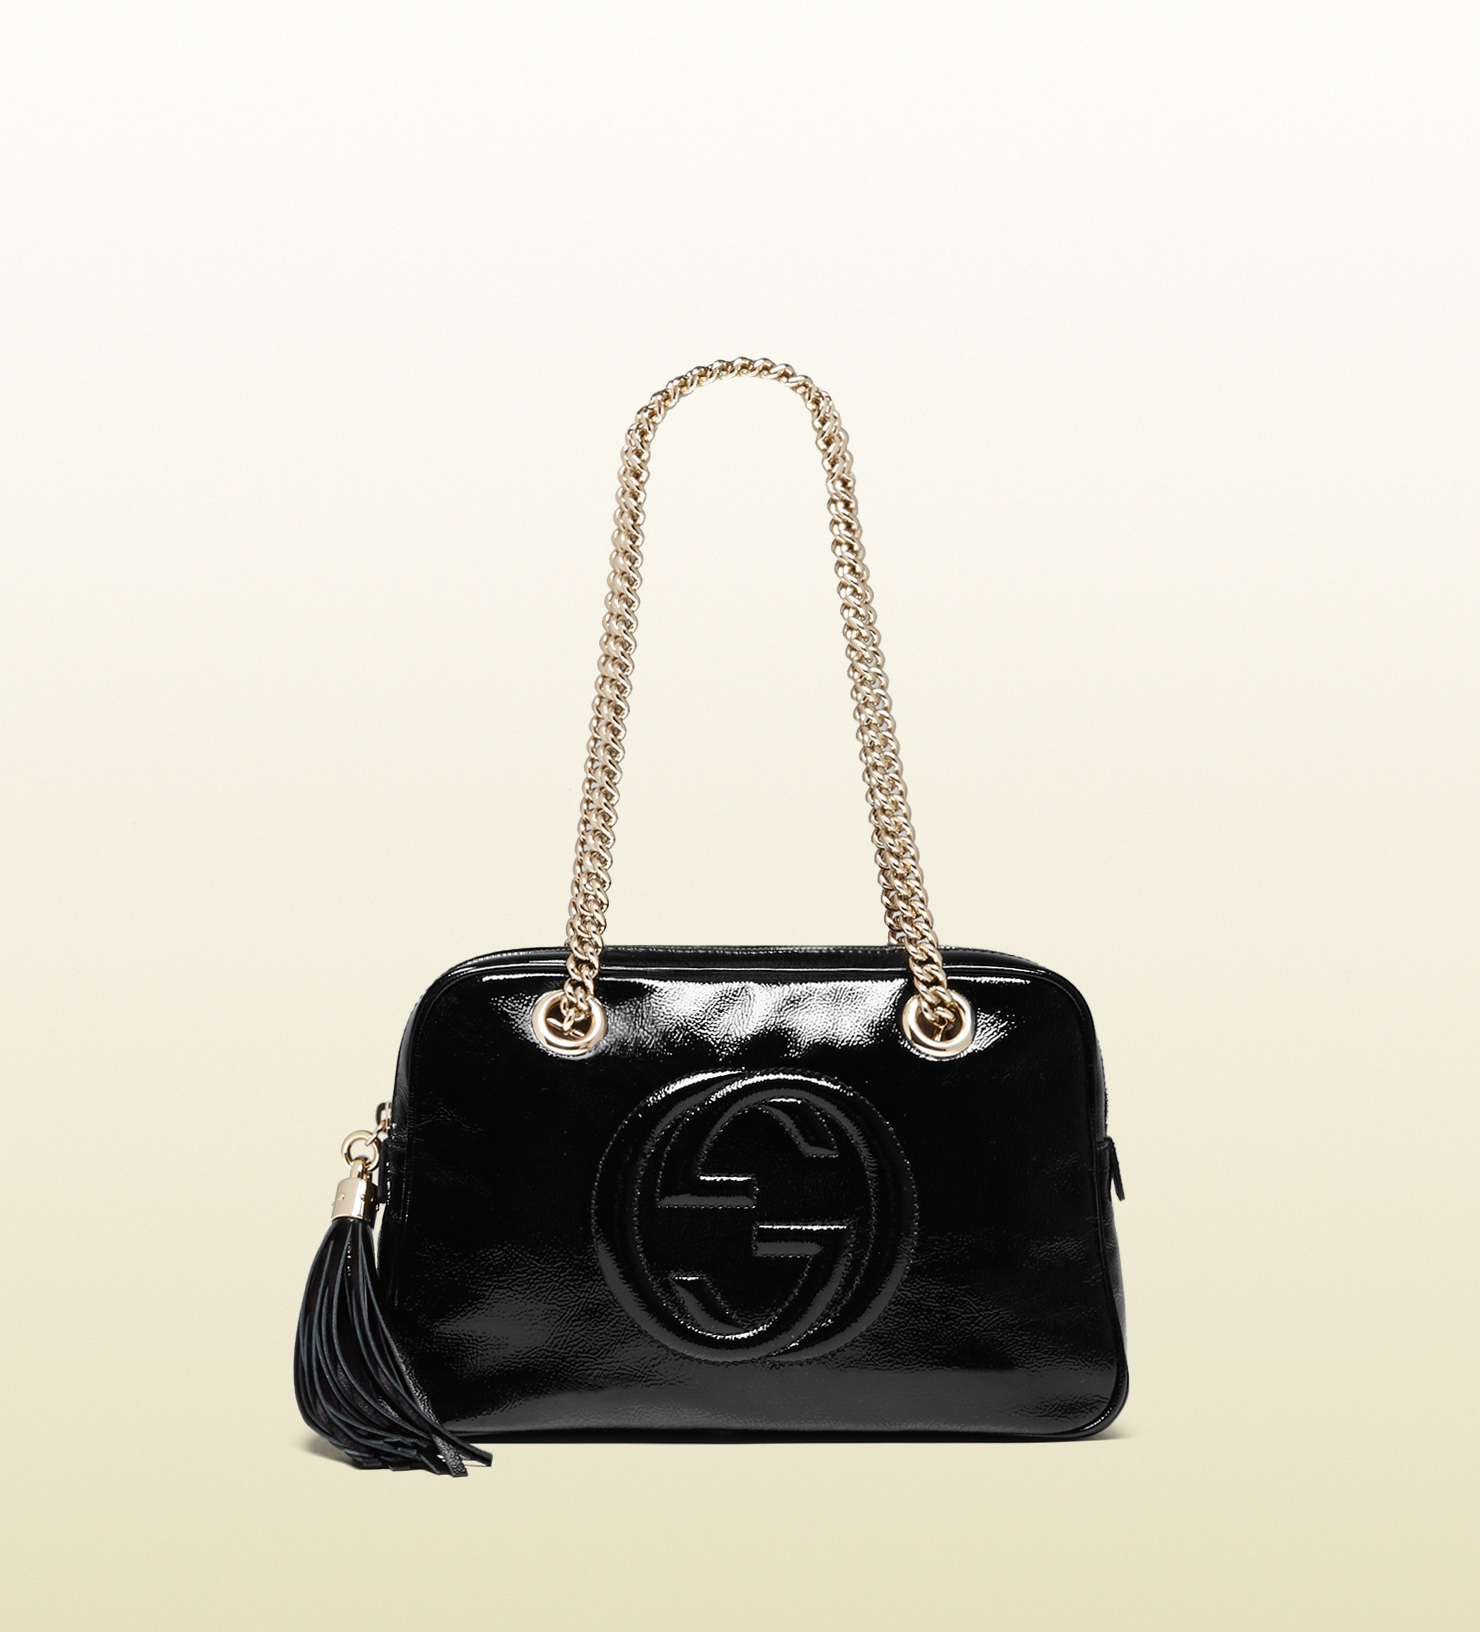 lyst gucci soho soft patent leather chain shoulder bag in black. Black Bedroom Furniture Sets. Home Design Ideas